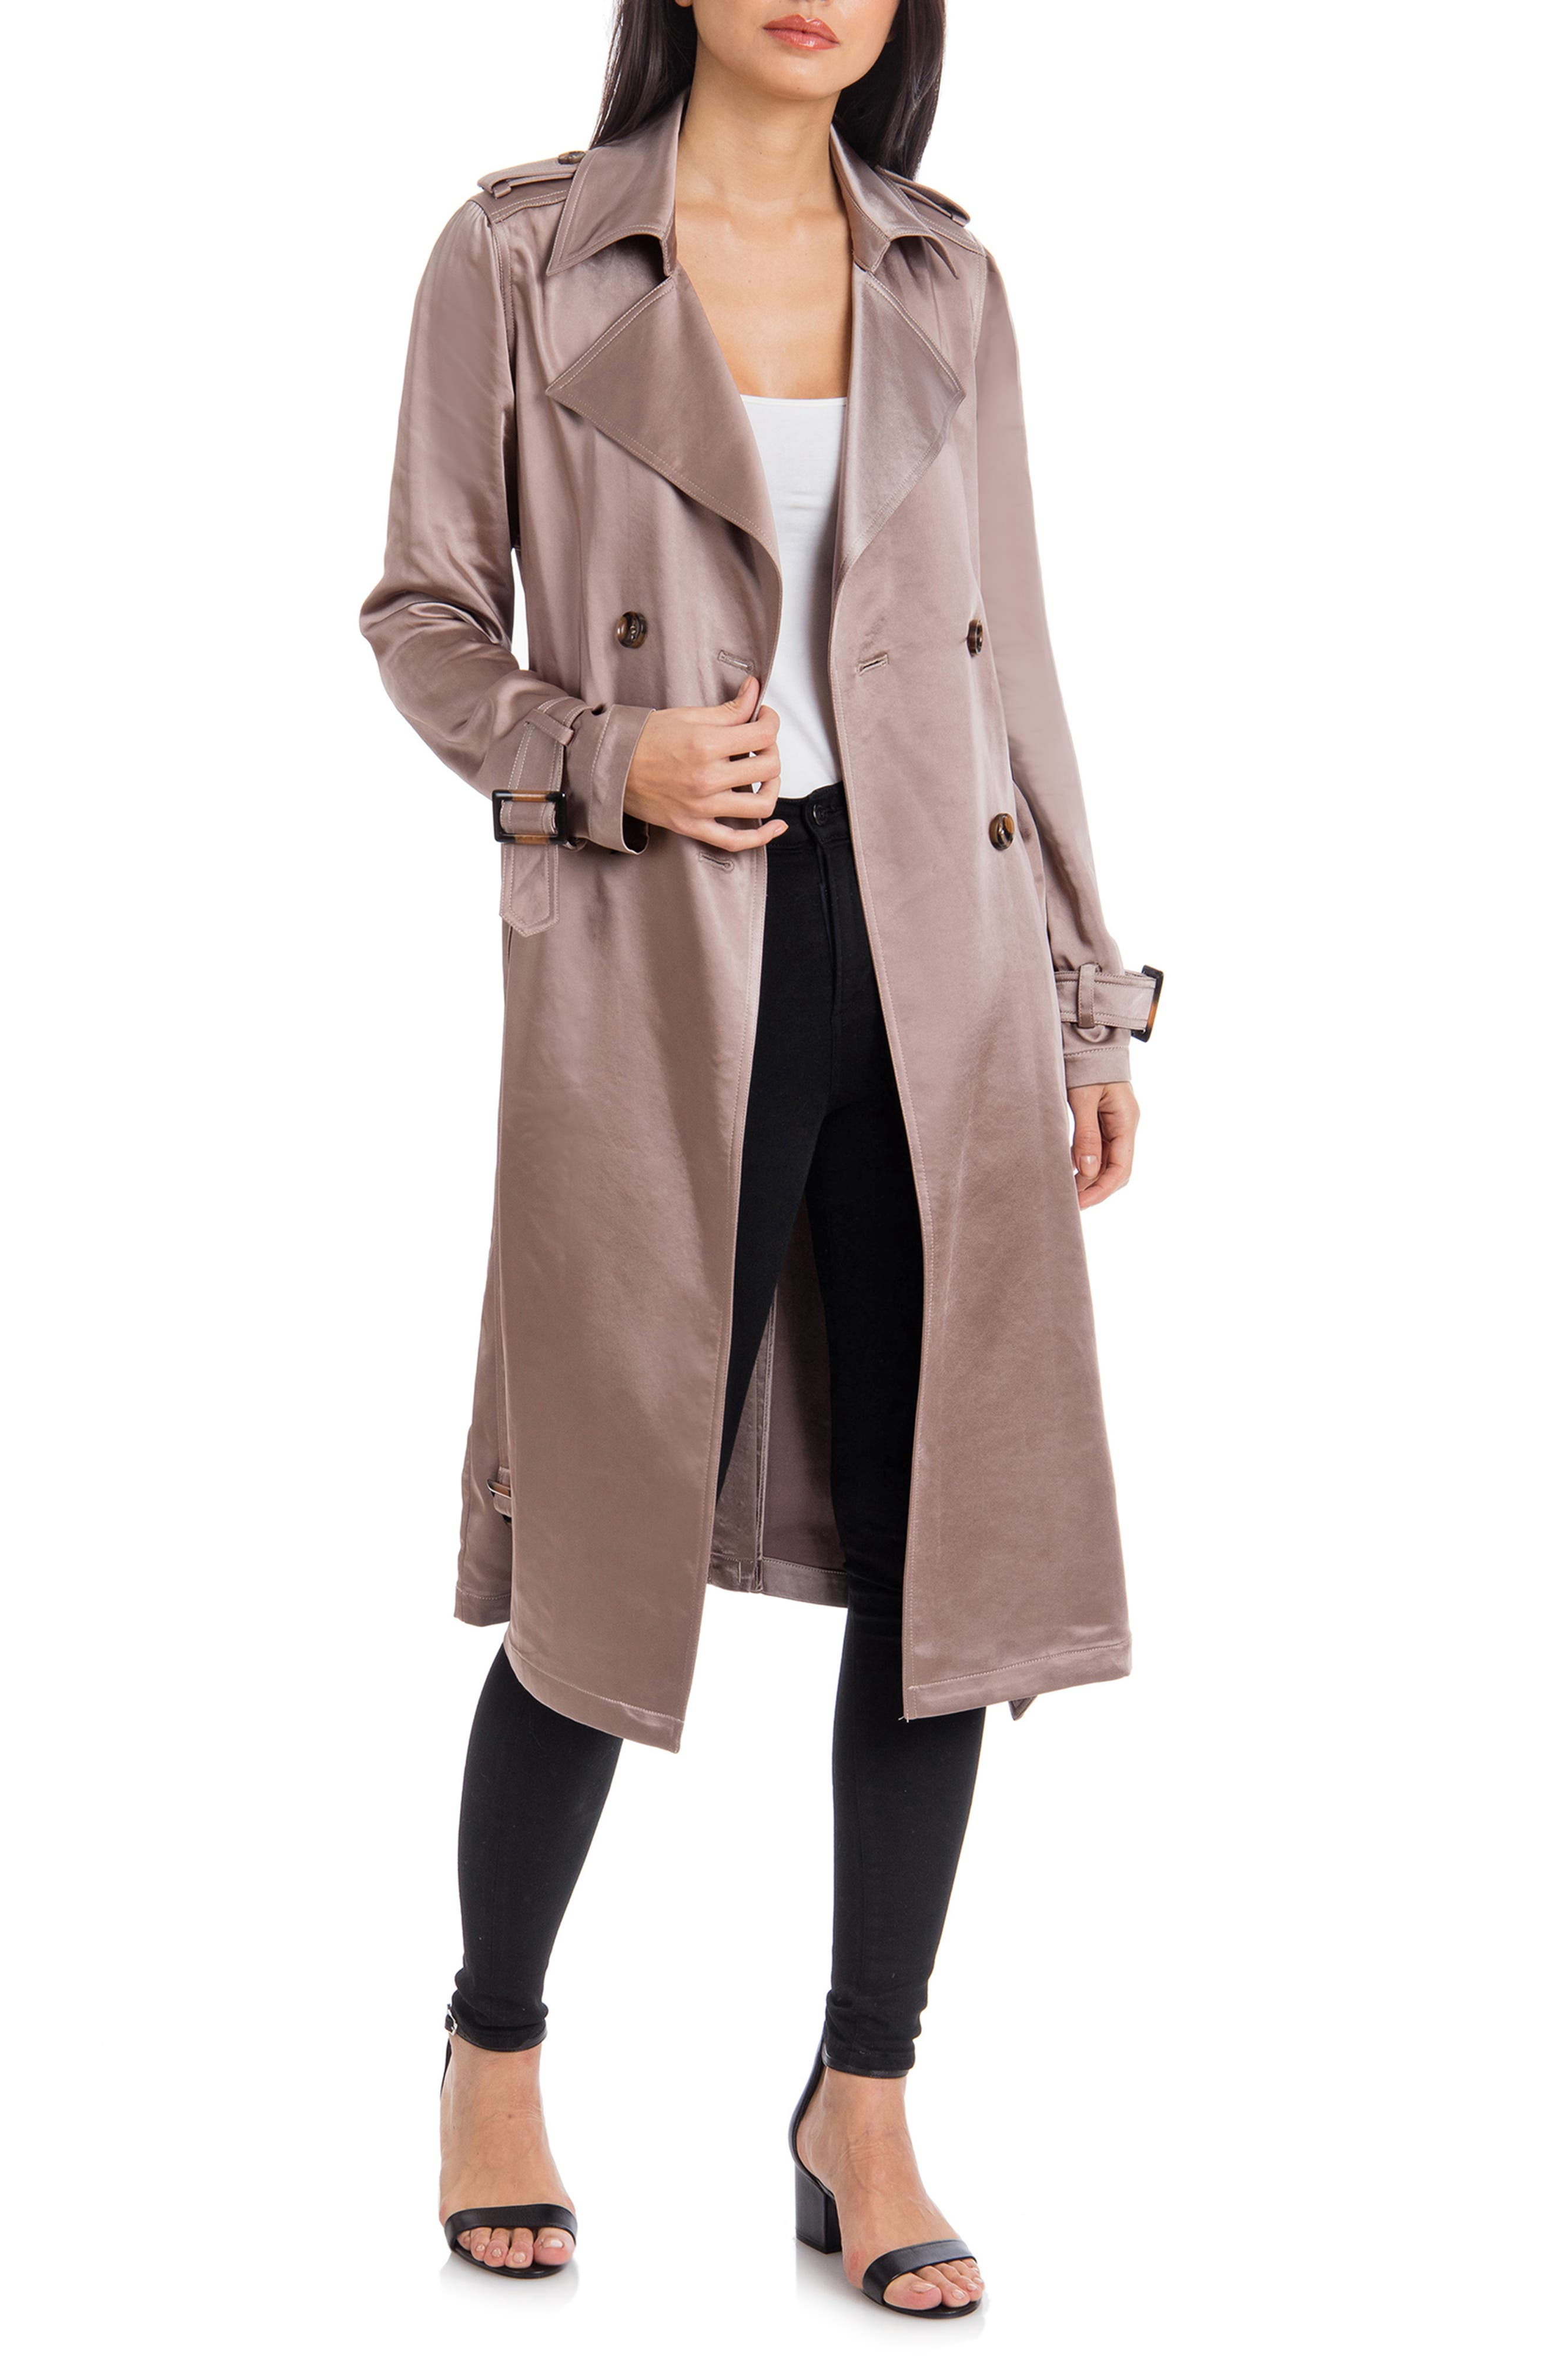 BADGLEY MISCHKA COLLECTION,                             Badgley Mischka Double Breasted Satin Trench Coat,                             Main thumbnail 1, color,                             TAUPE